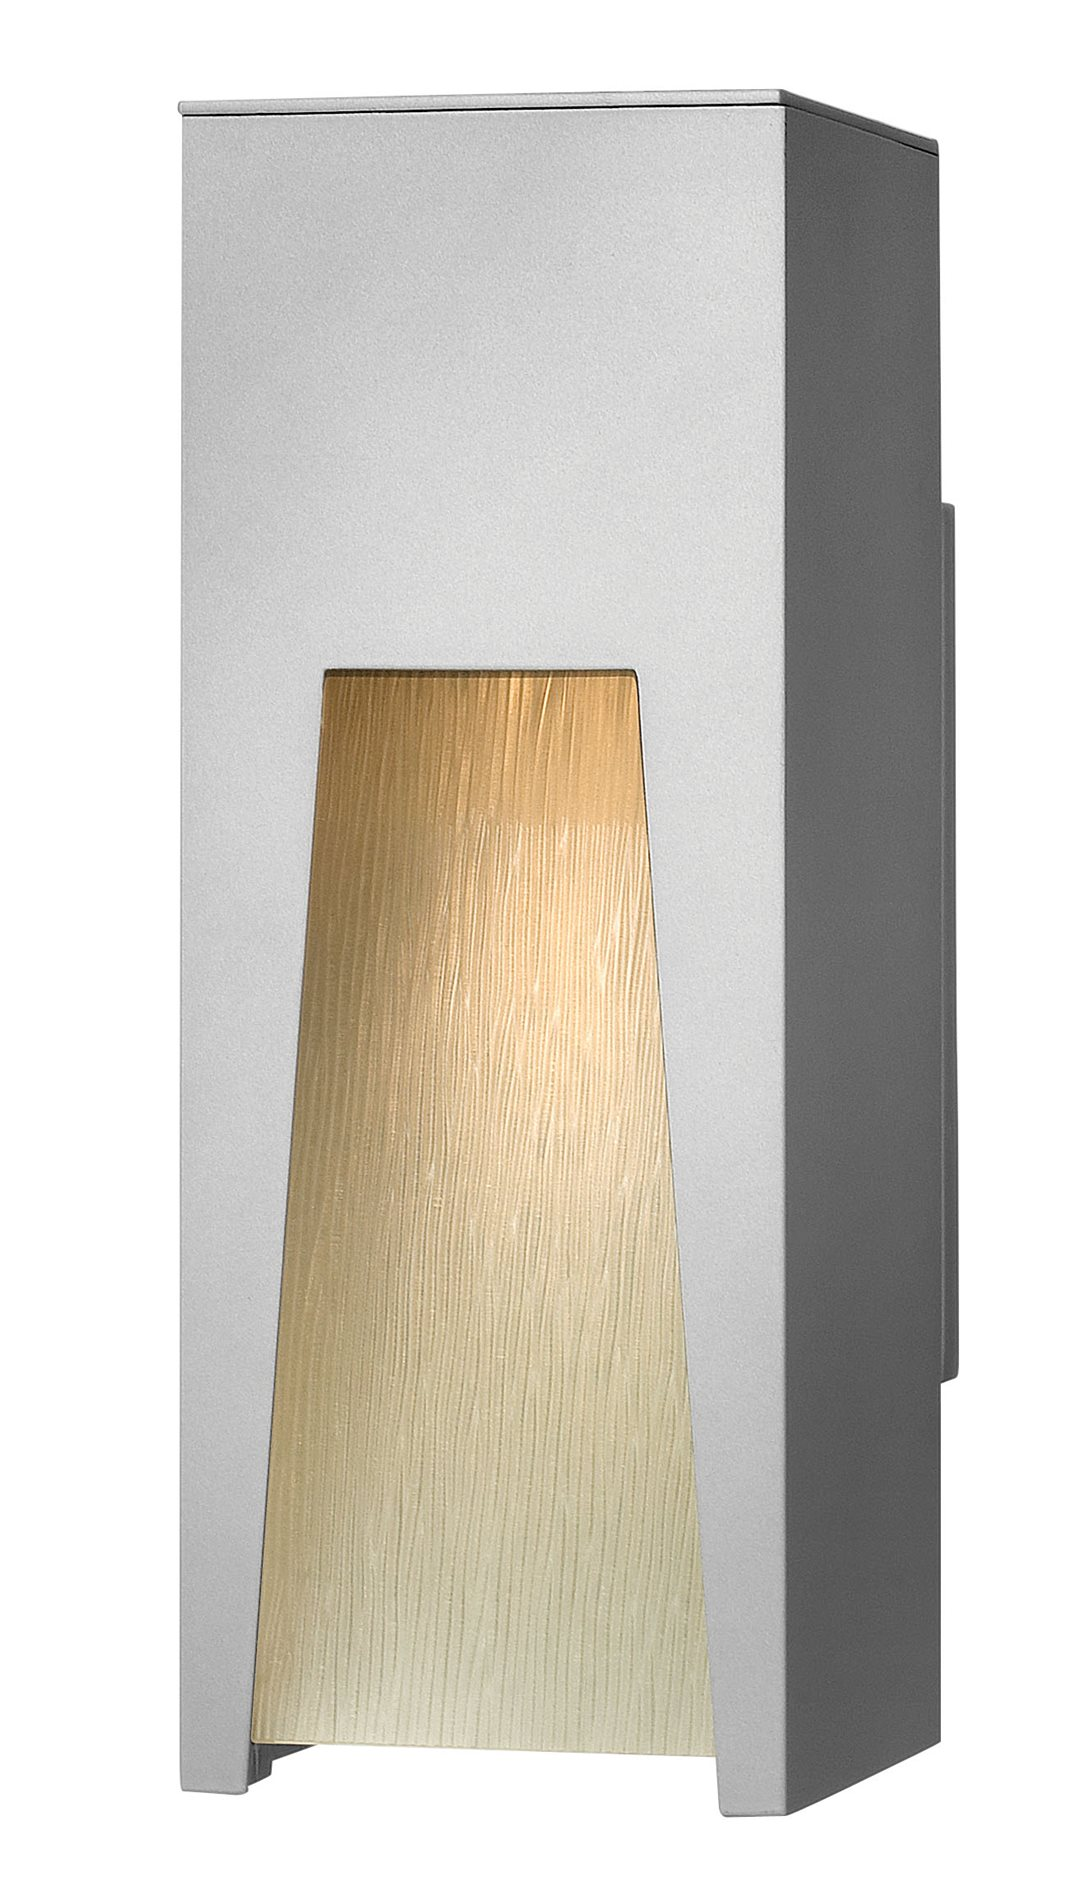 [Clearance] Kube Modern / Contemporary Outdoor Wall Sconce - XKH-TT-0671